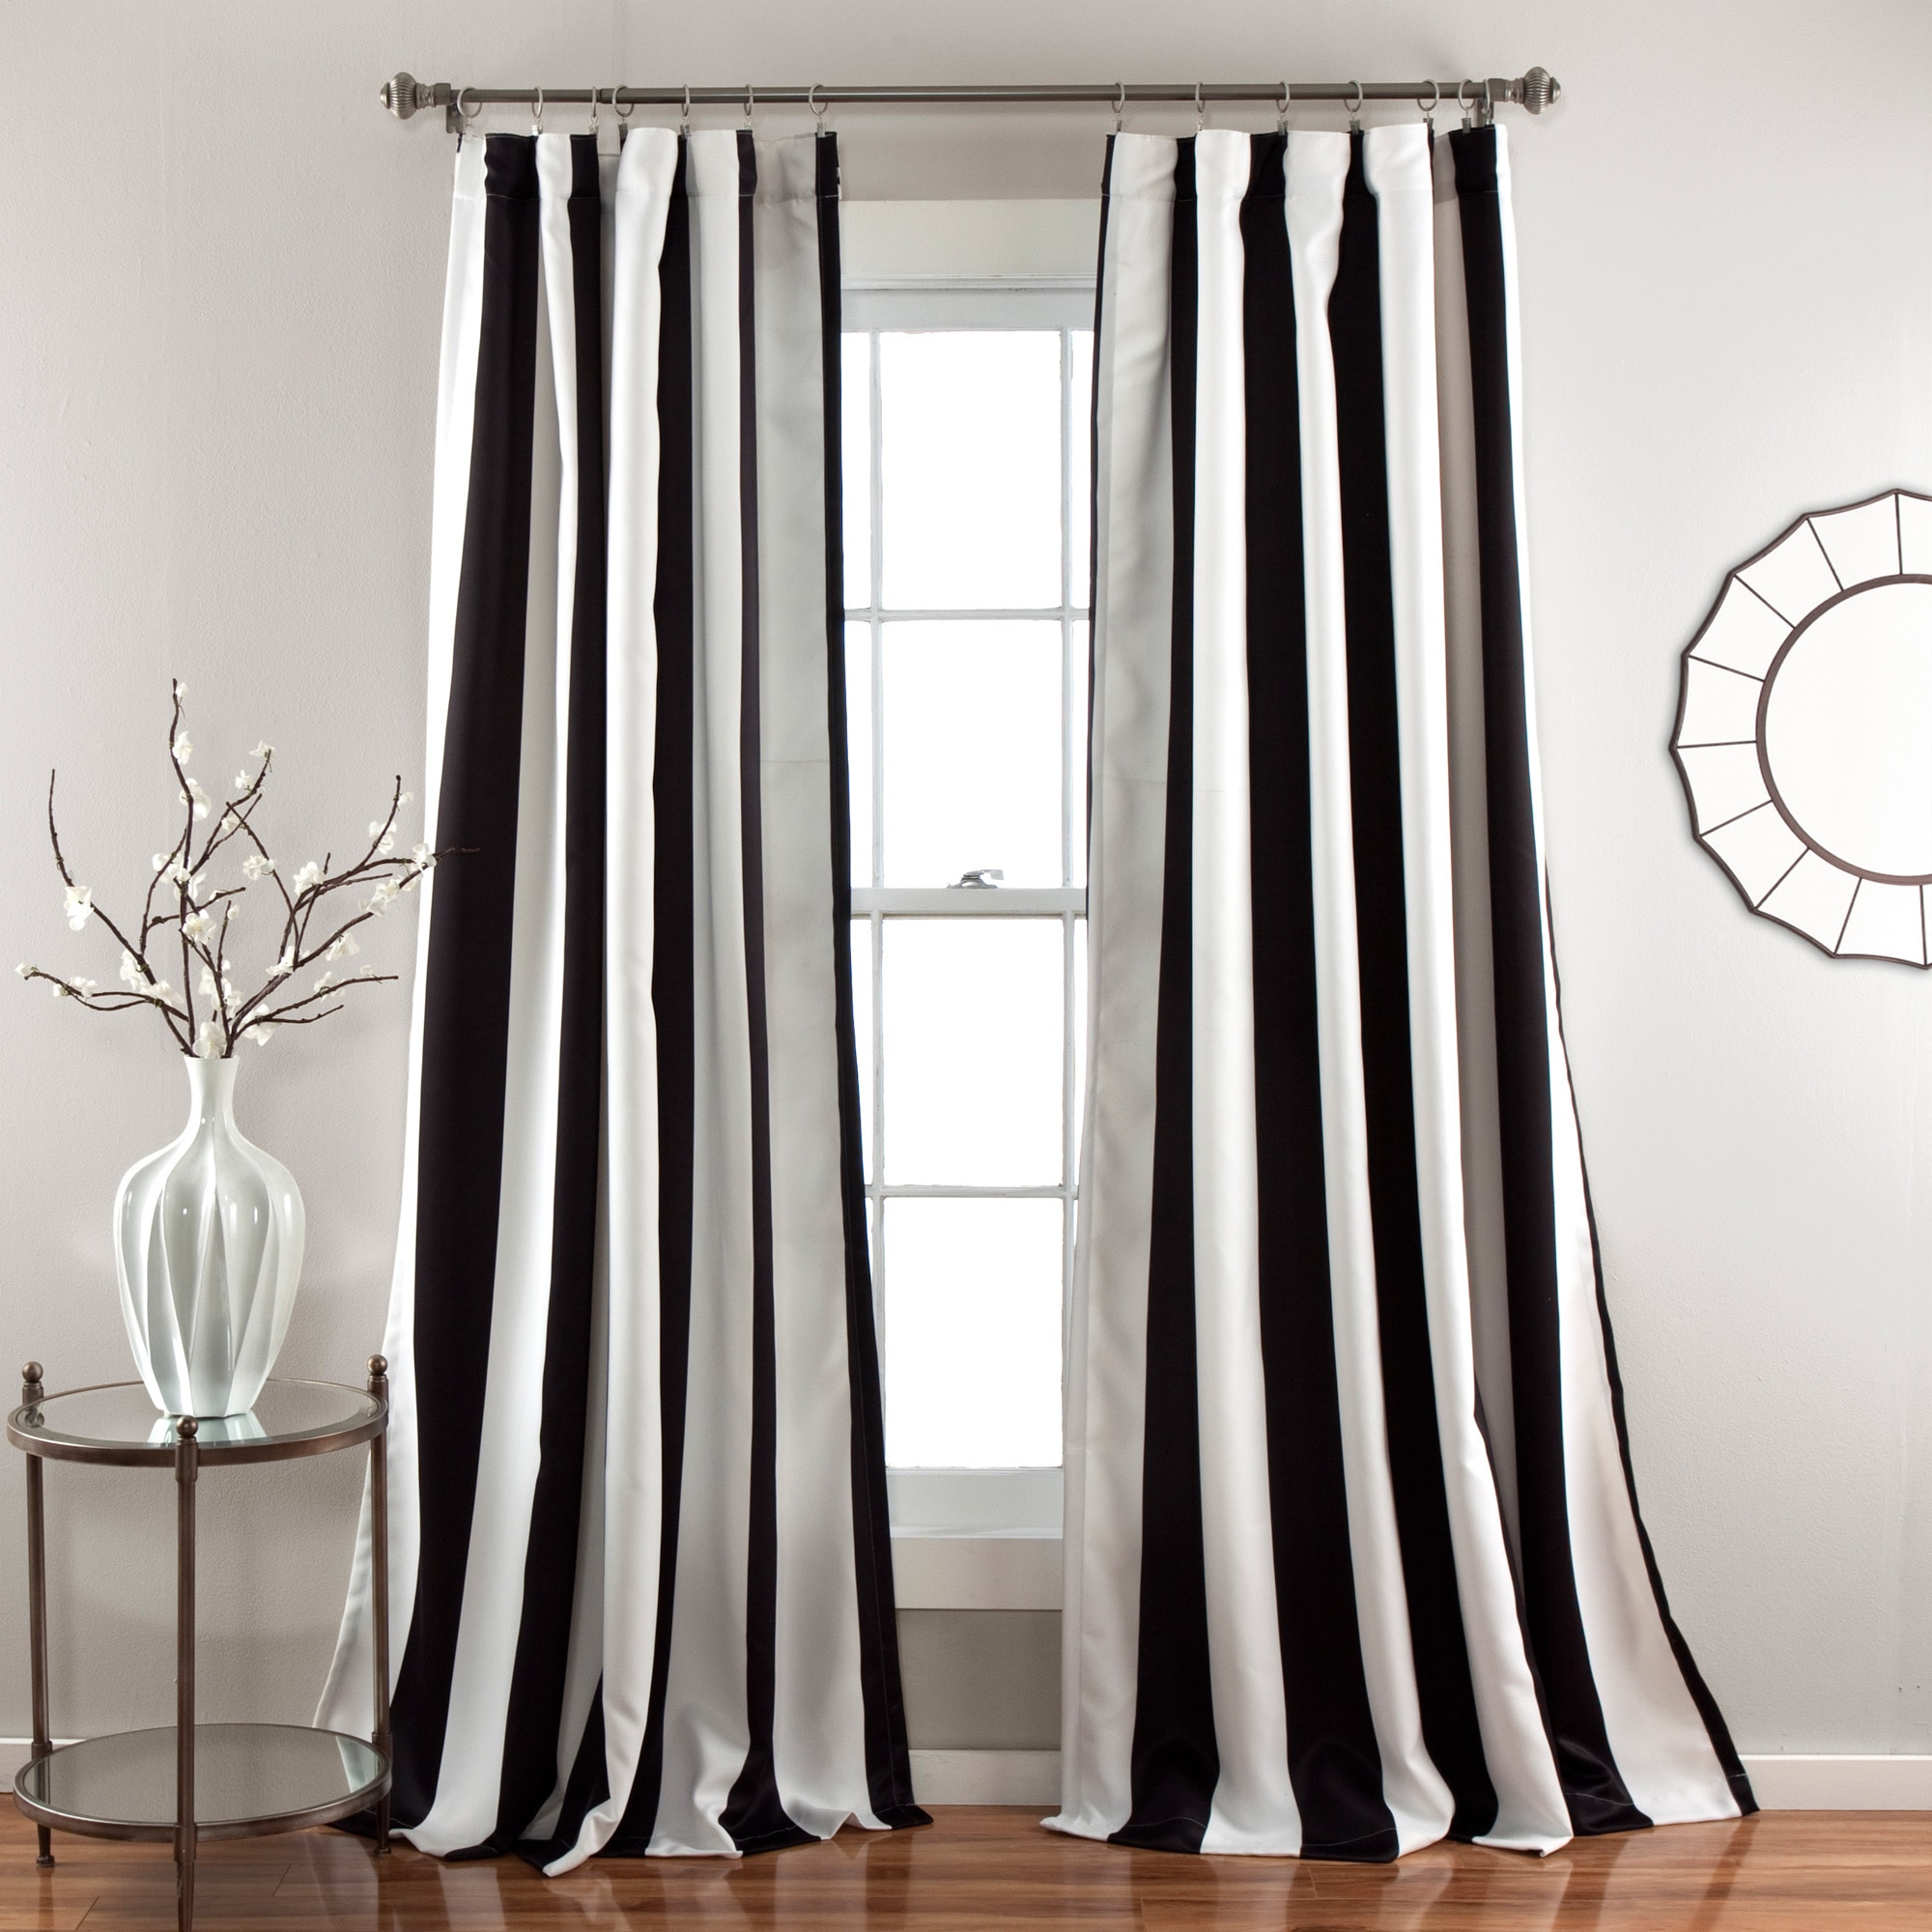 drapes red decoration small burlap sheer curtains valance yellow kitchen window valances black canada white for cafe long bathroom christmas in with online tier and target